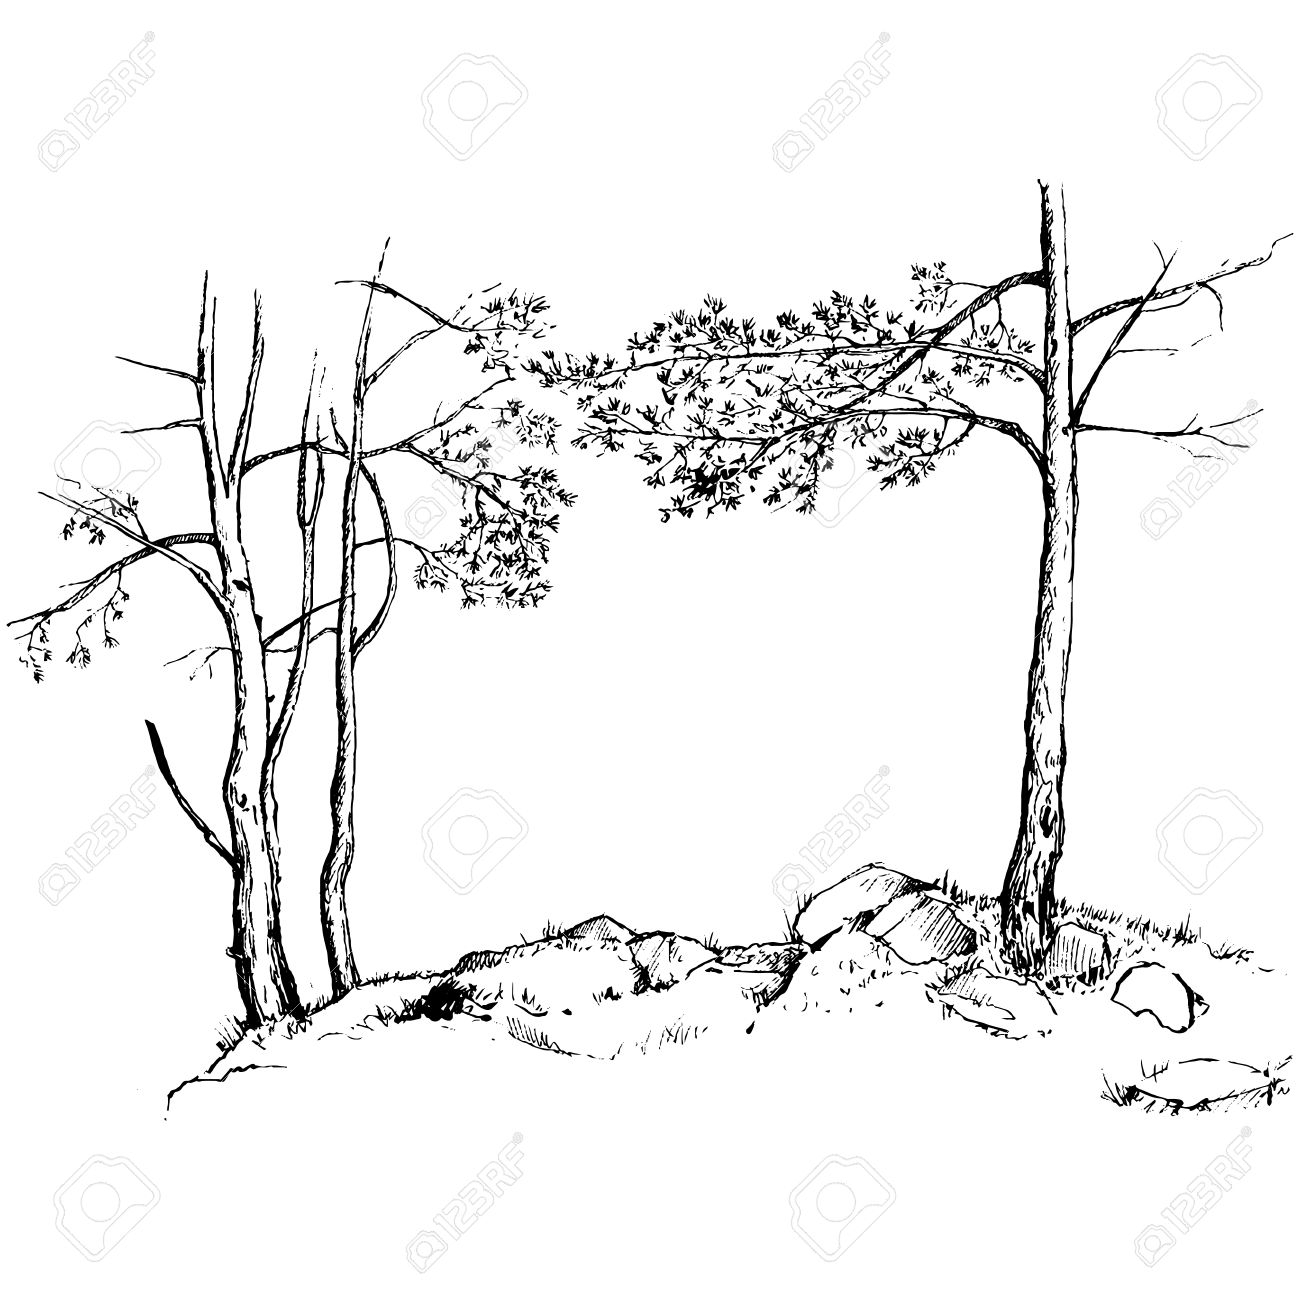 1300x1300 Hand Drawn Nature Drawings Pine Trees, Grass And Rocks Drawing By